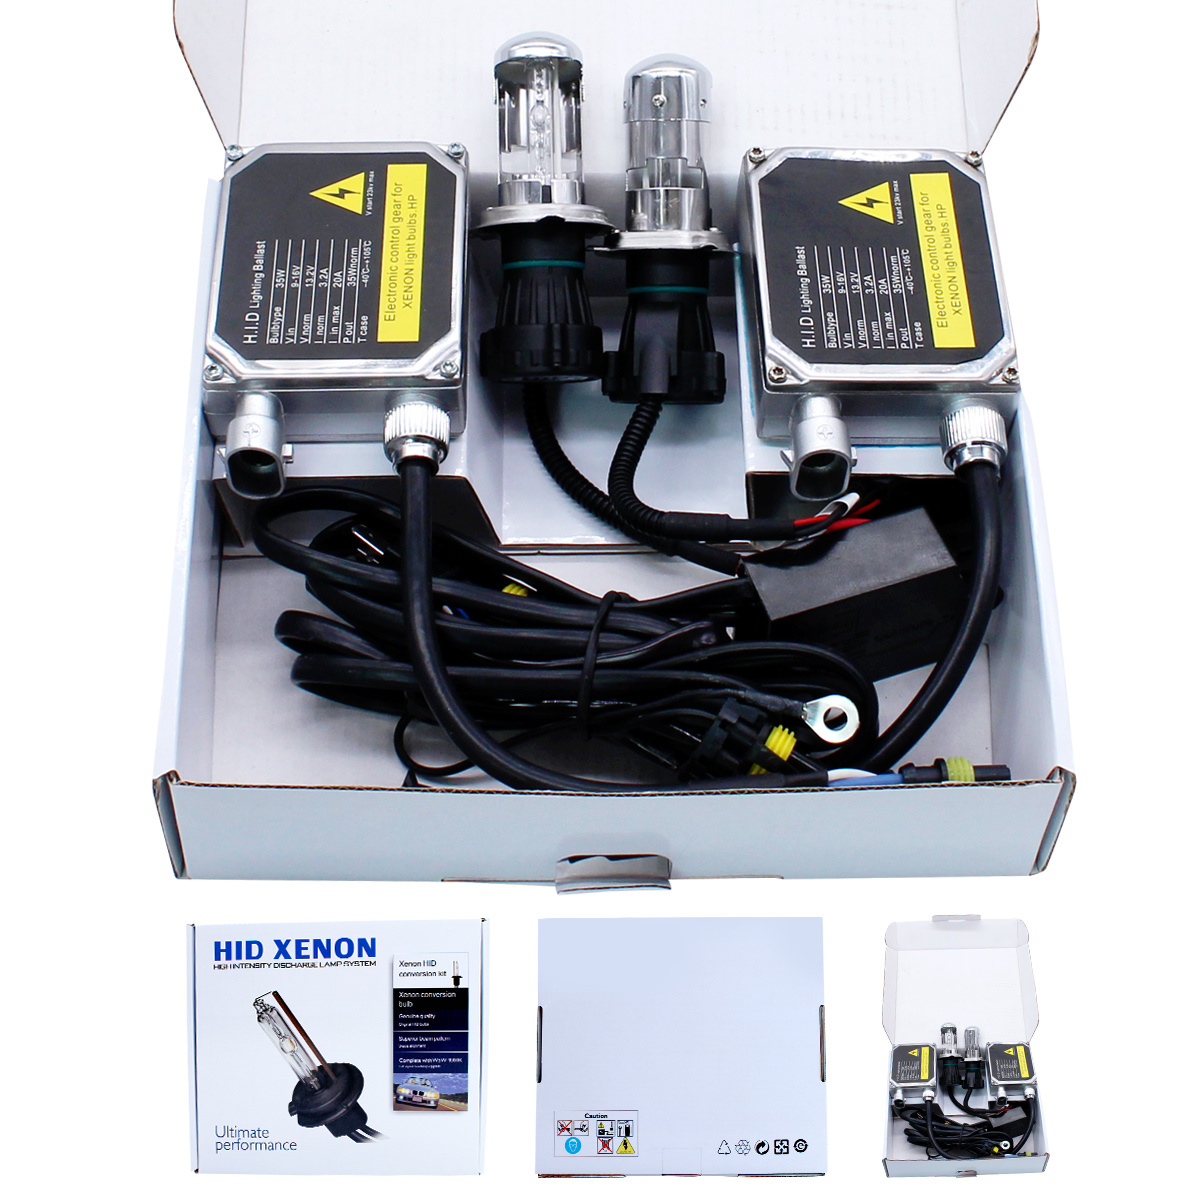 Limastar Hid Xenon Bulbs D2s D2r D4s D4r 6000k White Conversion Kit Wiring Diagram 3 Short Voltage Protection Test 4 Over 5 Flash Impact No Flashing During Steady Status